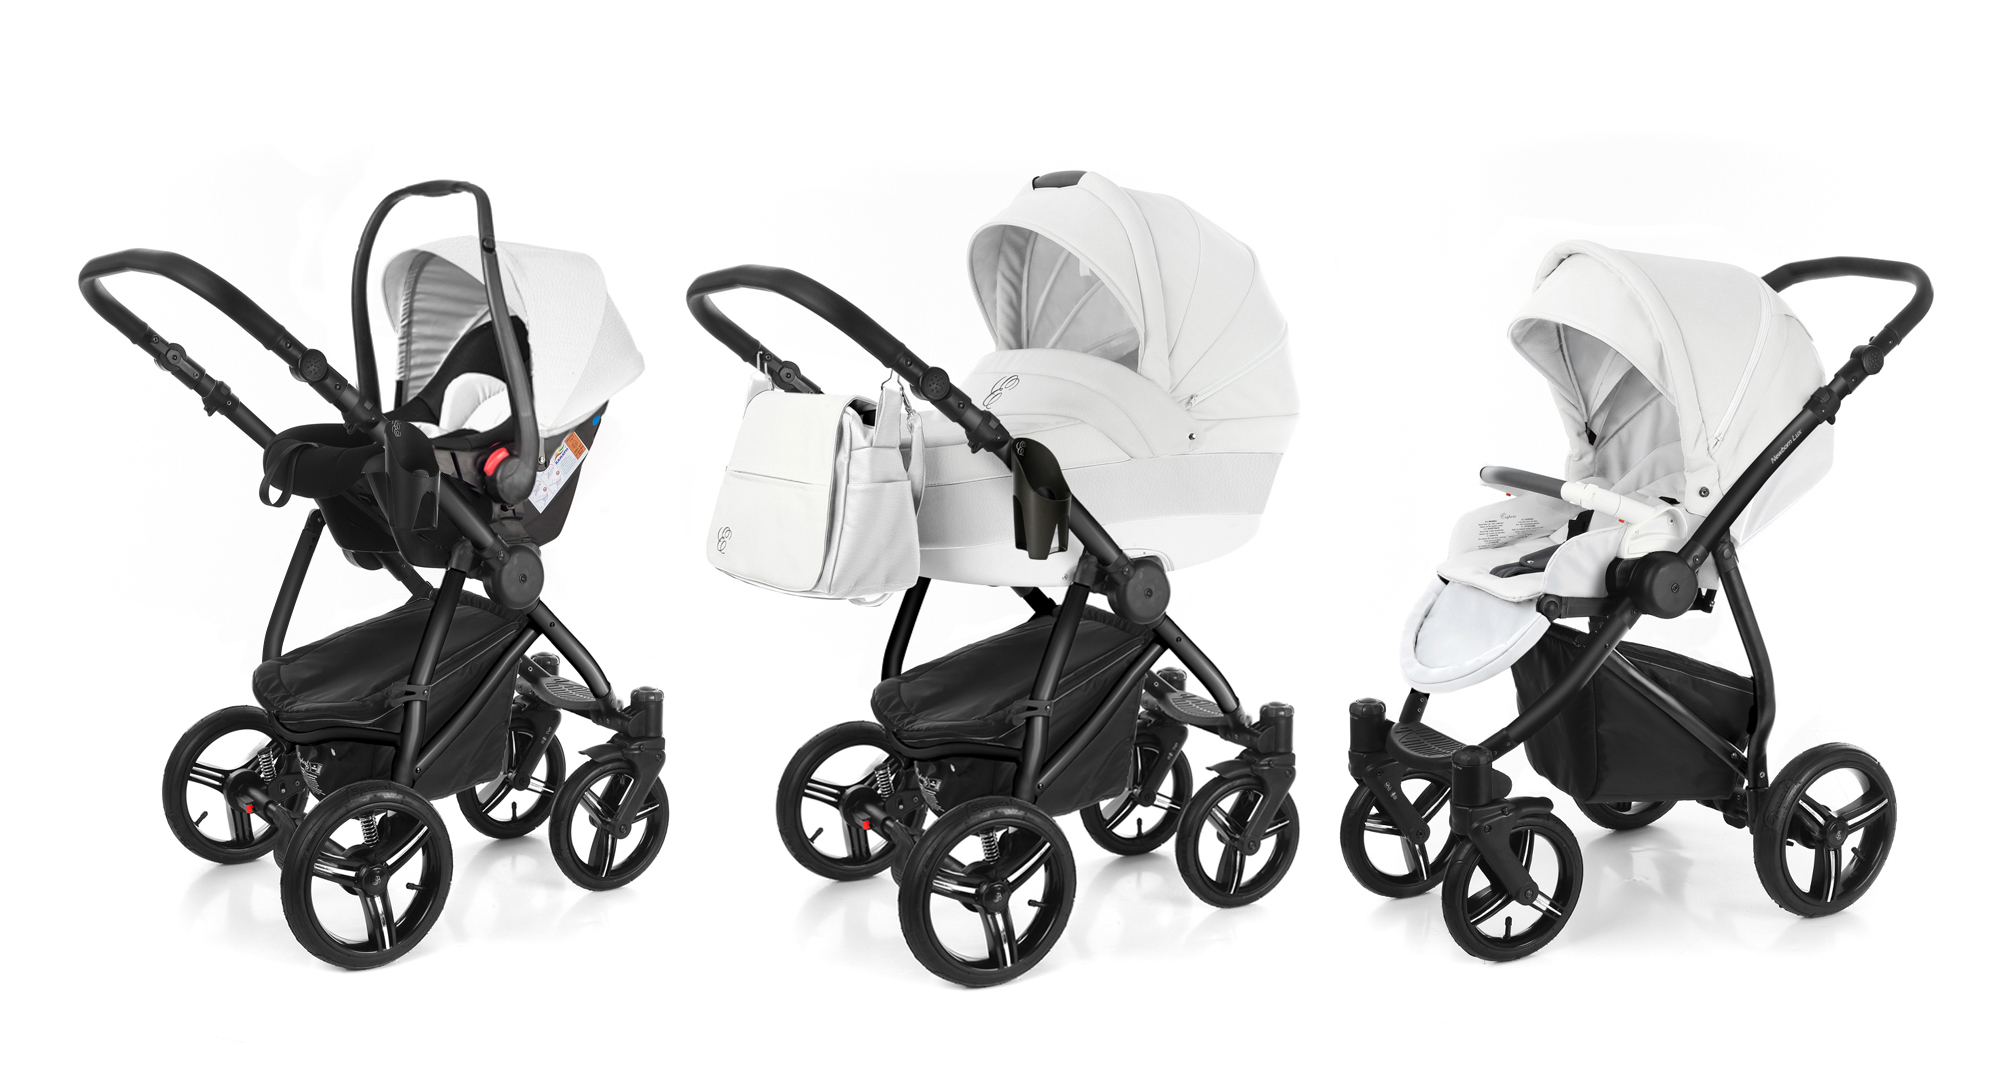 Коляска 3 в 1 Esspero Grand Newborn Lux (шасси Black). Фото N10